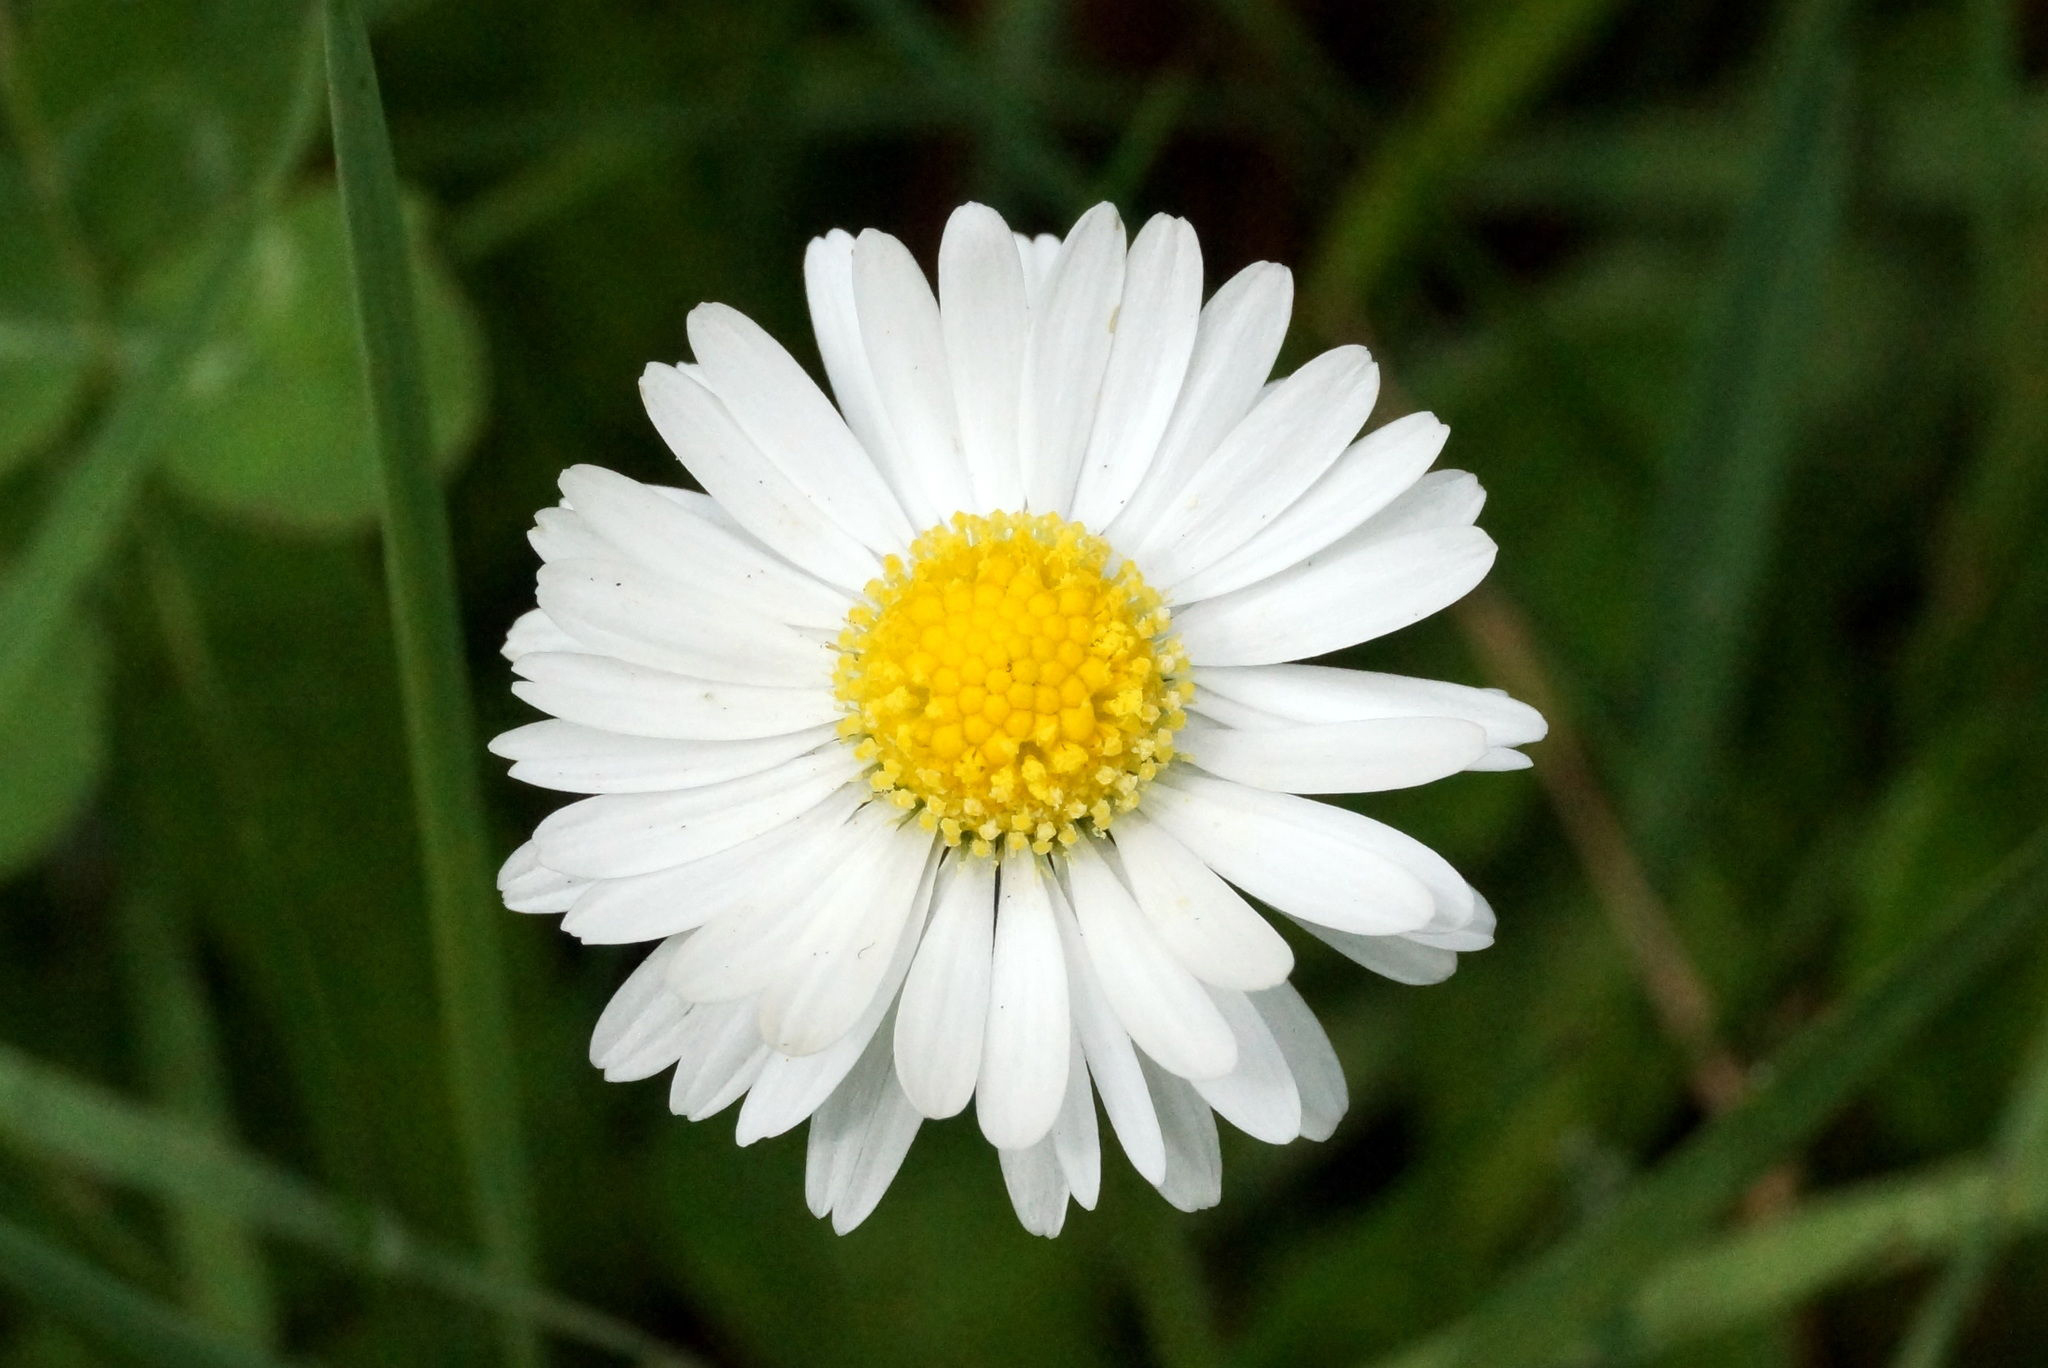 Daisy Facts And Health Benefits